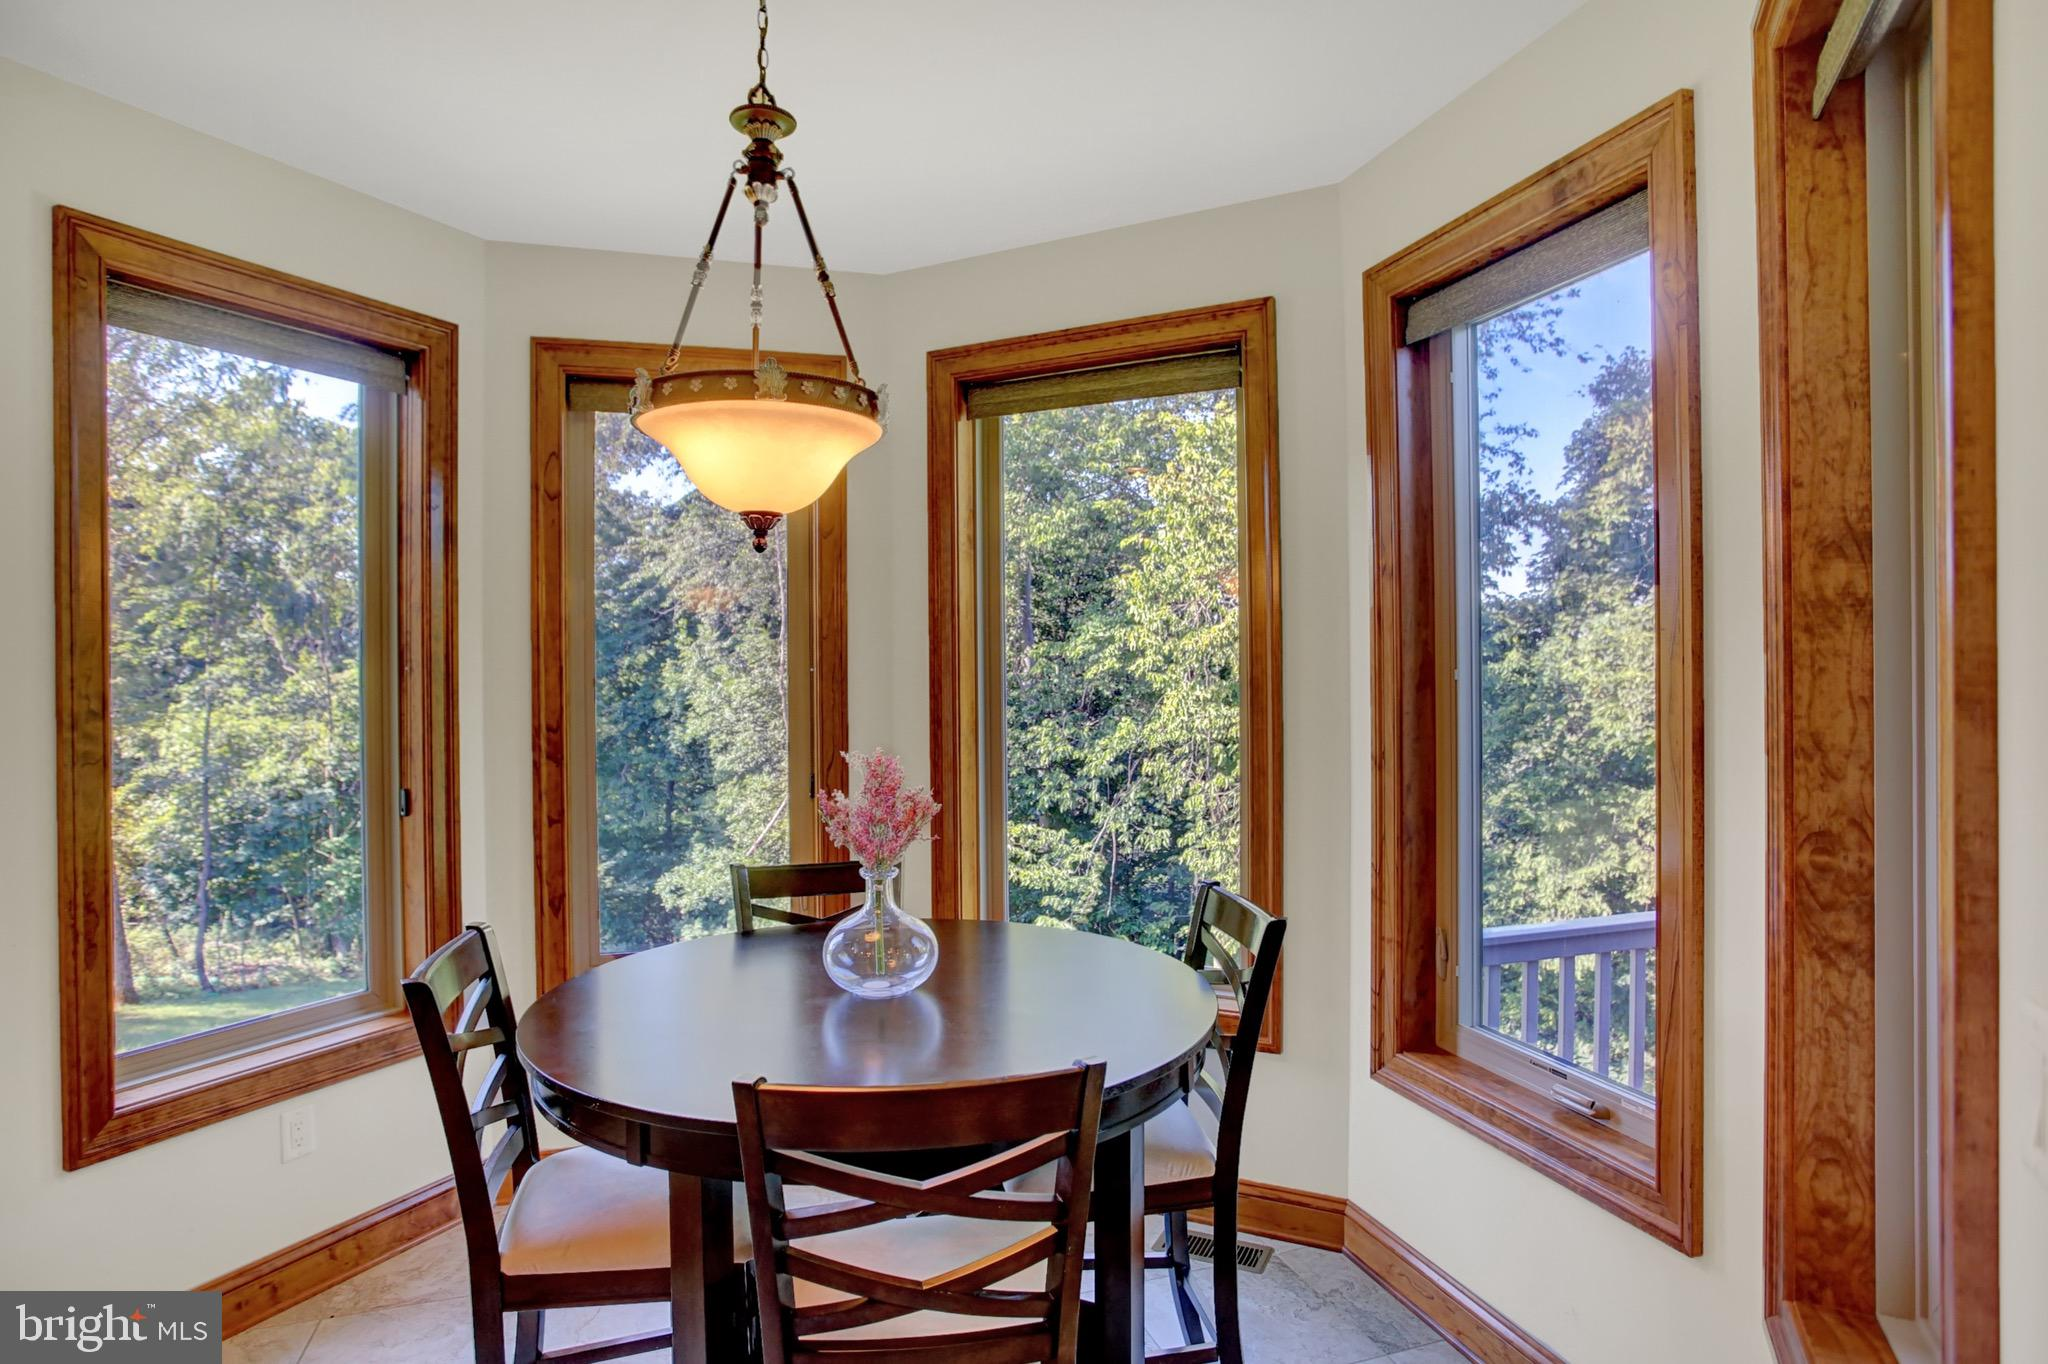 Bright breakfast nook with large windows